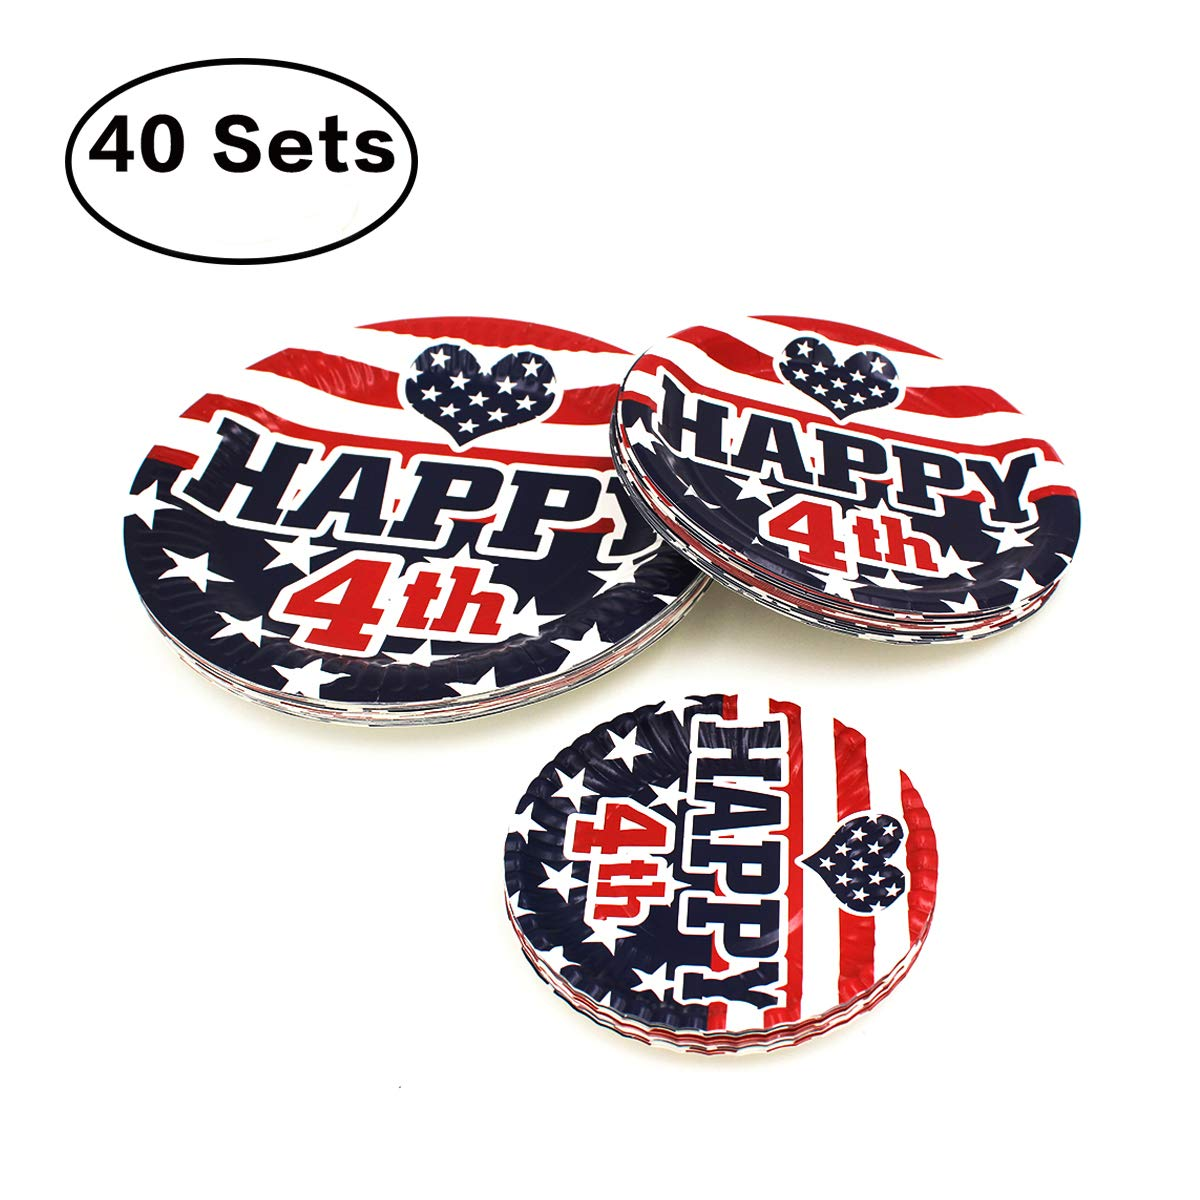 Brightone Disposable Everyday Paper Plates, 180 Count 3 Size Round Plates Flag Design Eco-Friendly Paper Plate